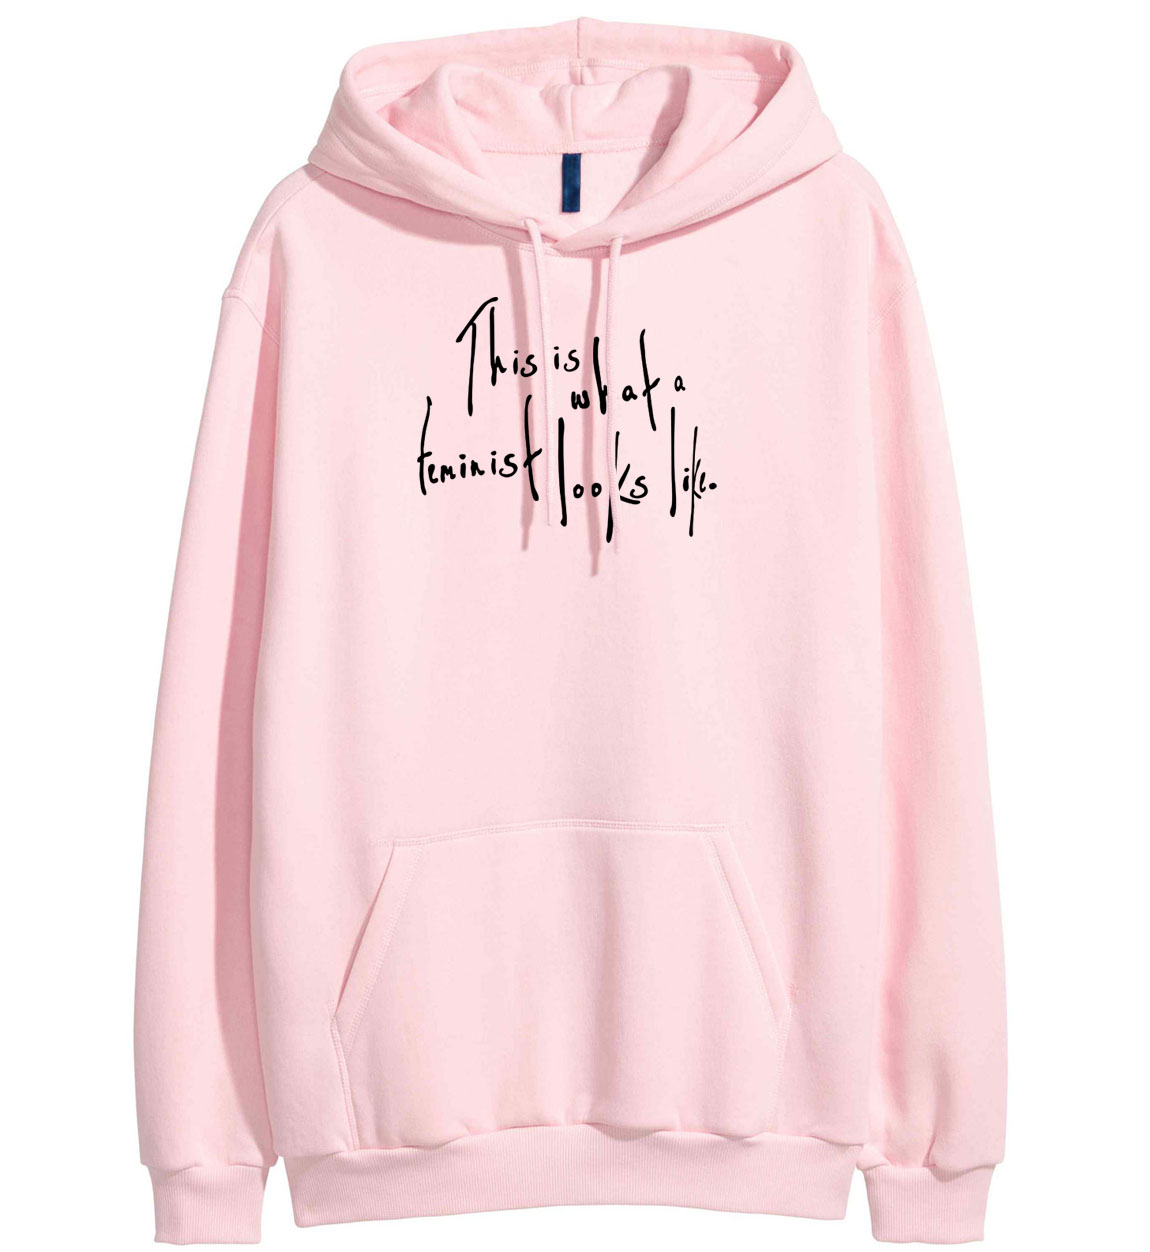 Hoodies For Women 2019 Spring Winter Sweatshirt Letter Print This Is What a Feminist Looks Like Harajuku Casual Pullover Female